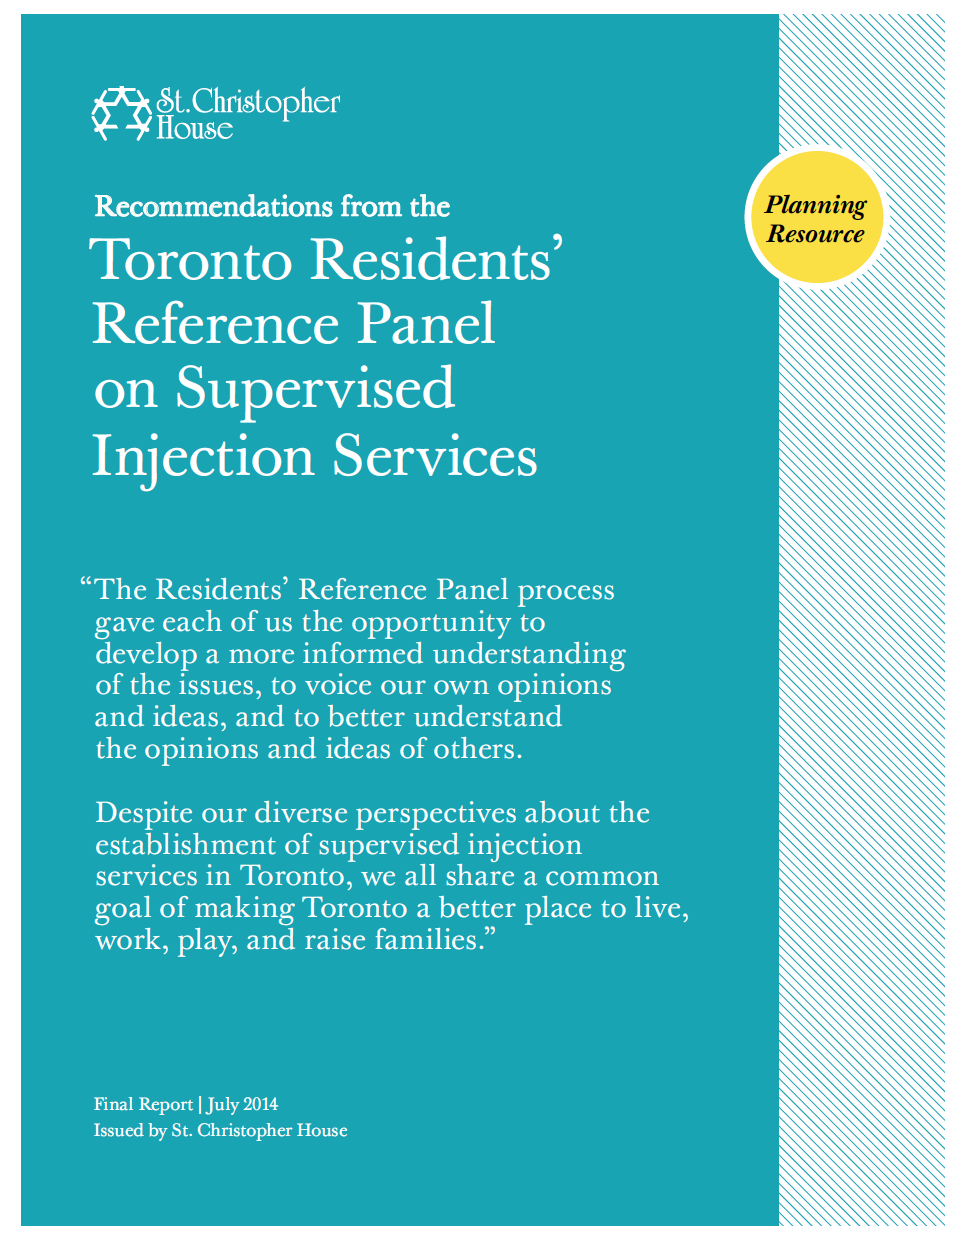 The Toronto Residents' Reference Panel on Supervised Injection Services (2014)